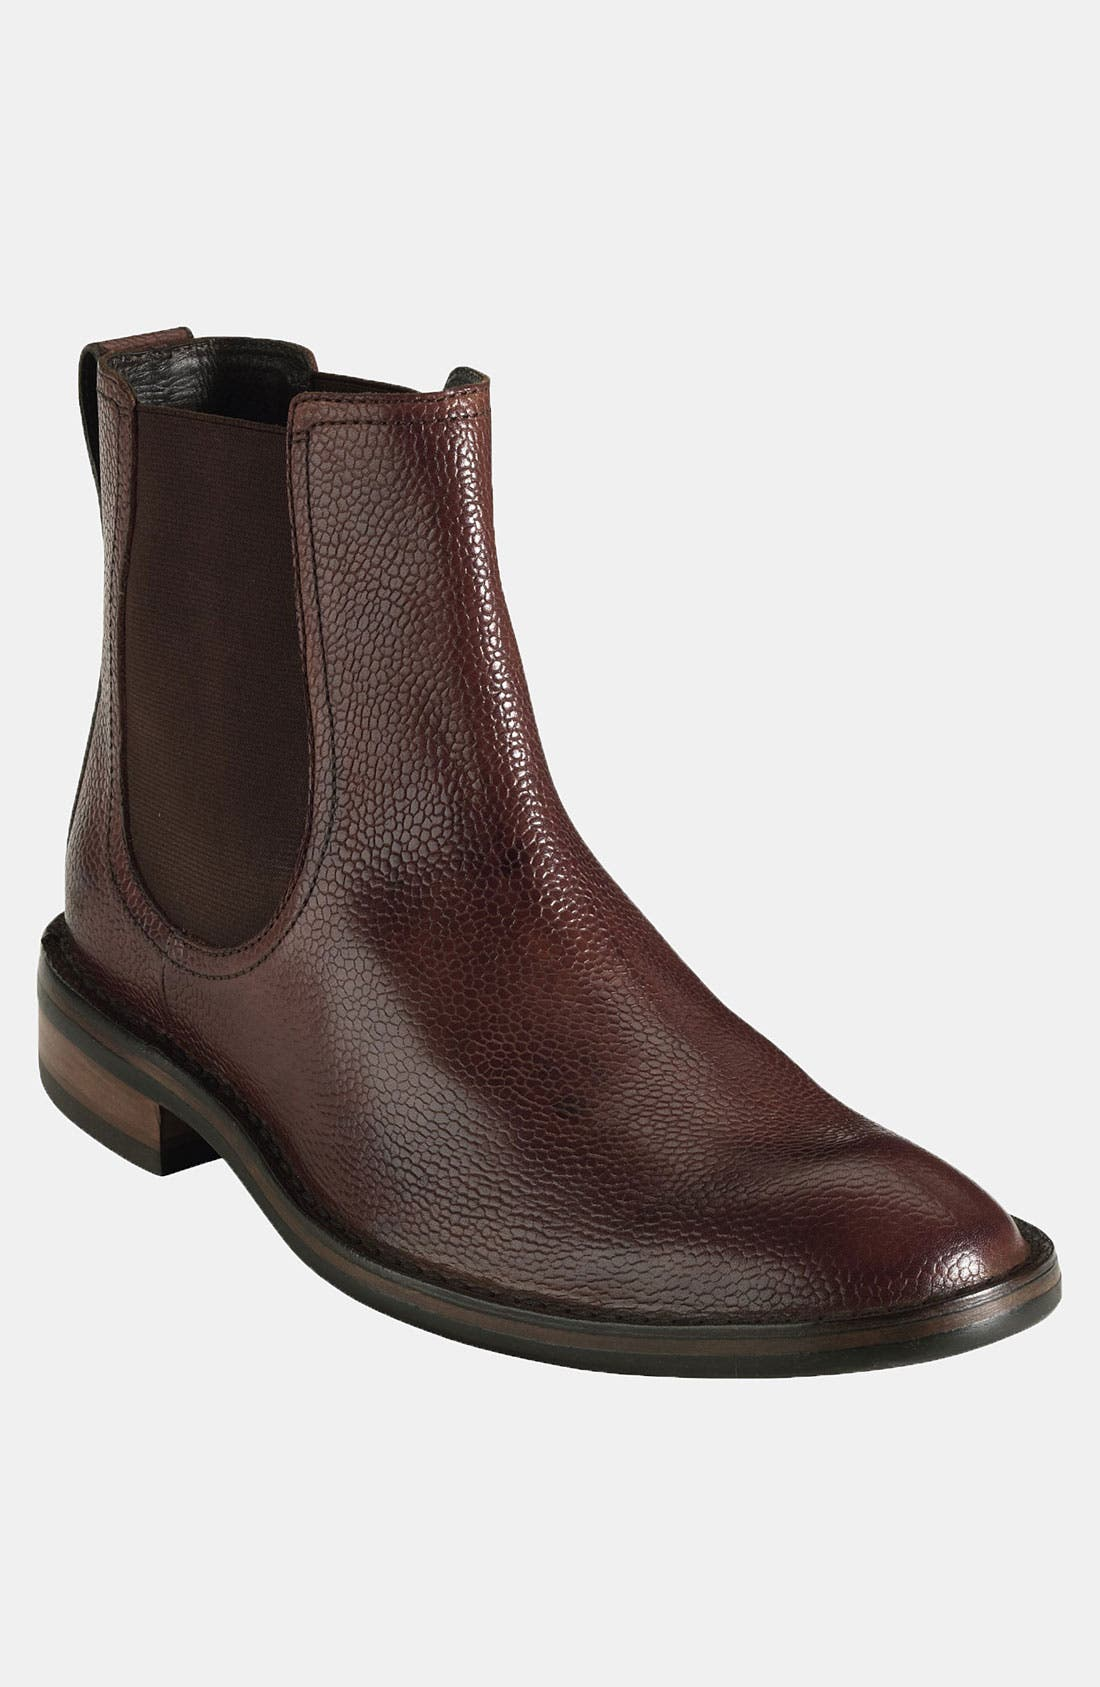 Alternate Image 1 Selected - Cole Haan 'Air Canton Chelsea' Boot